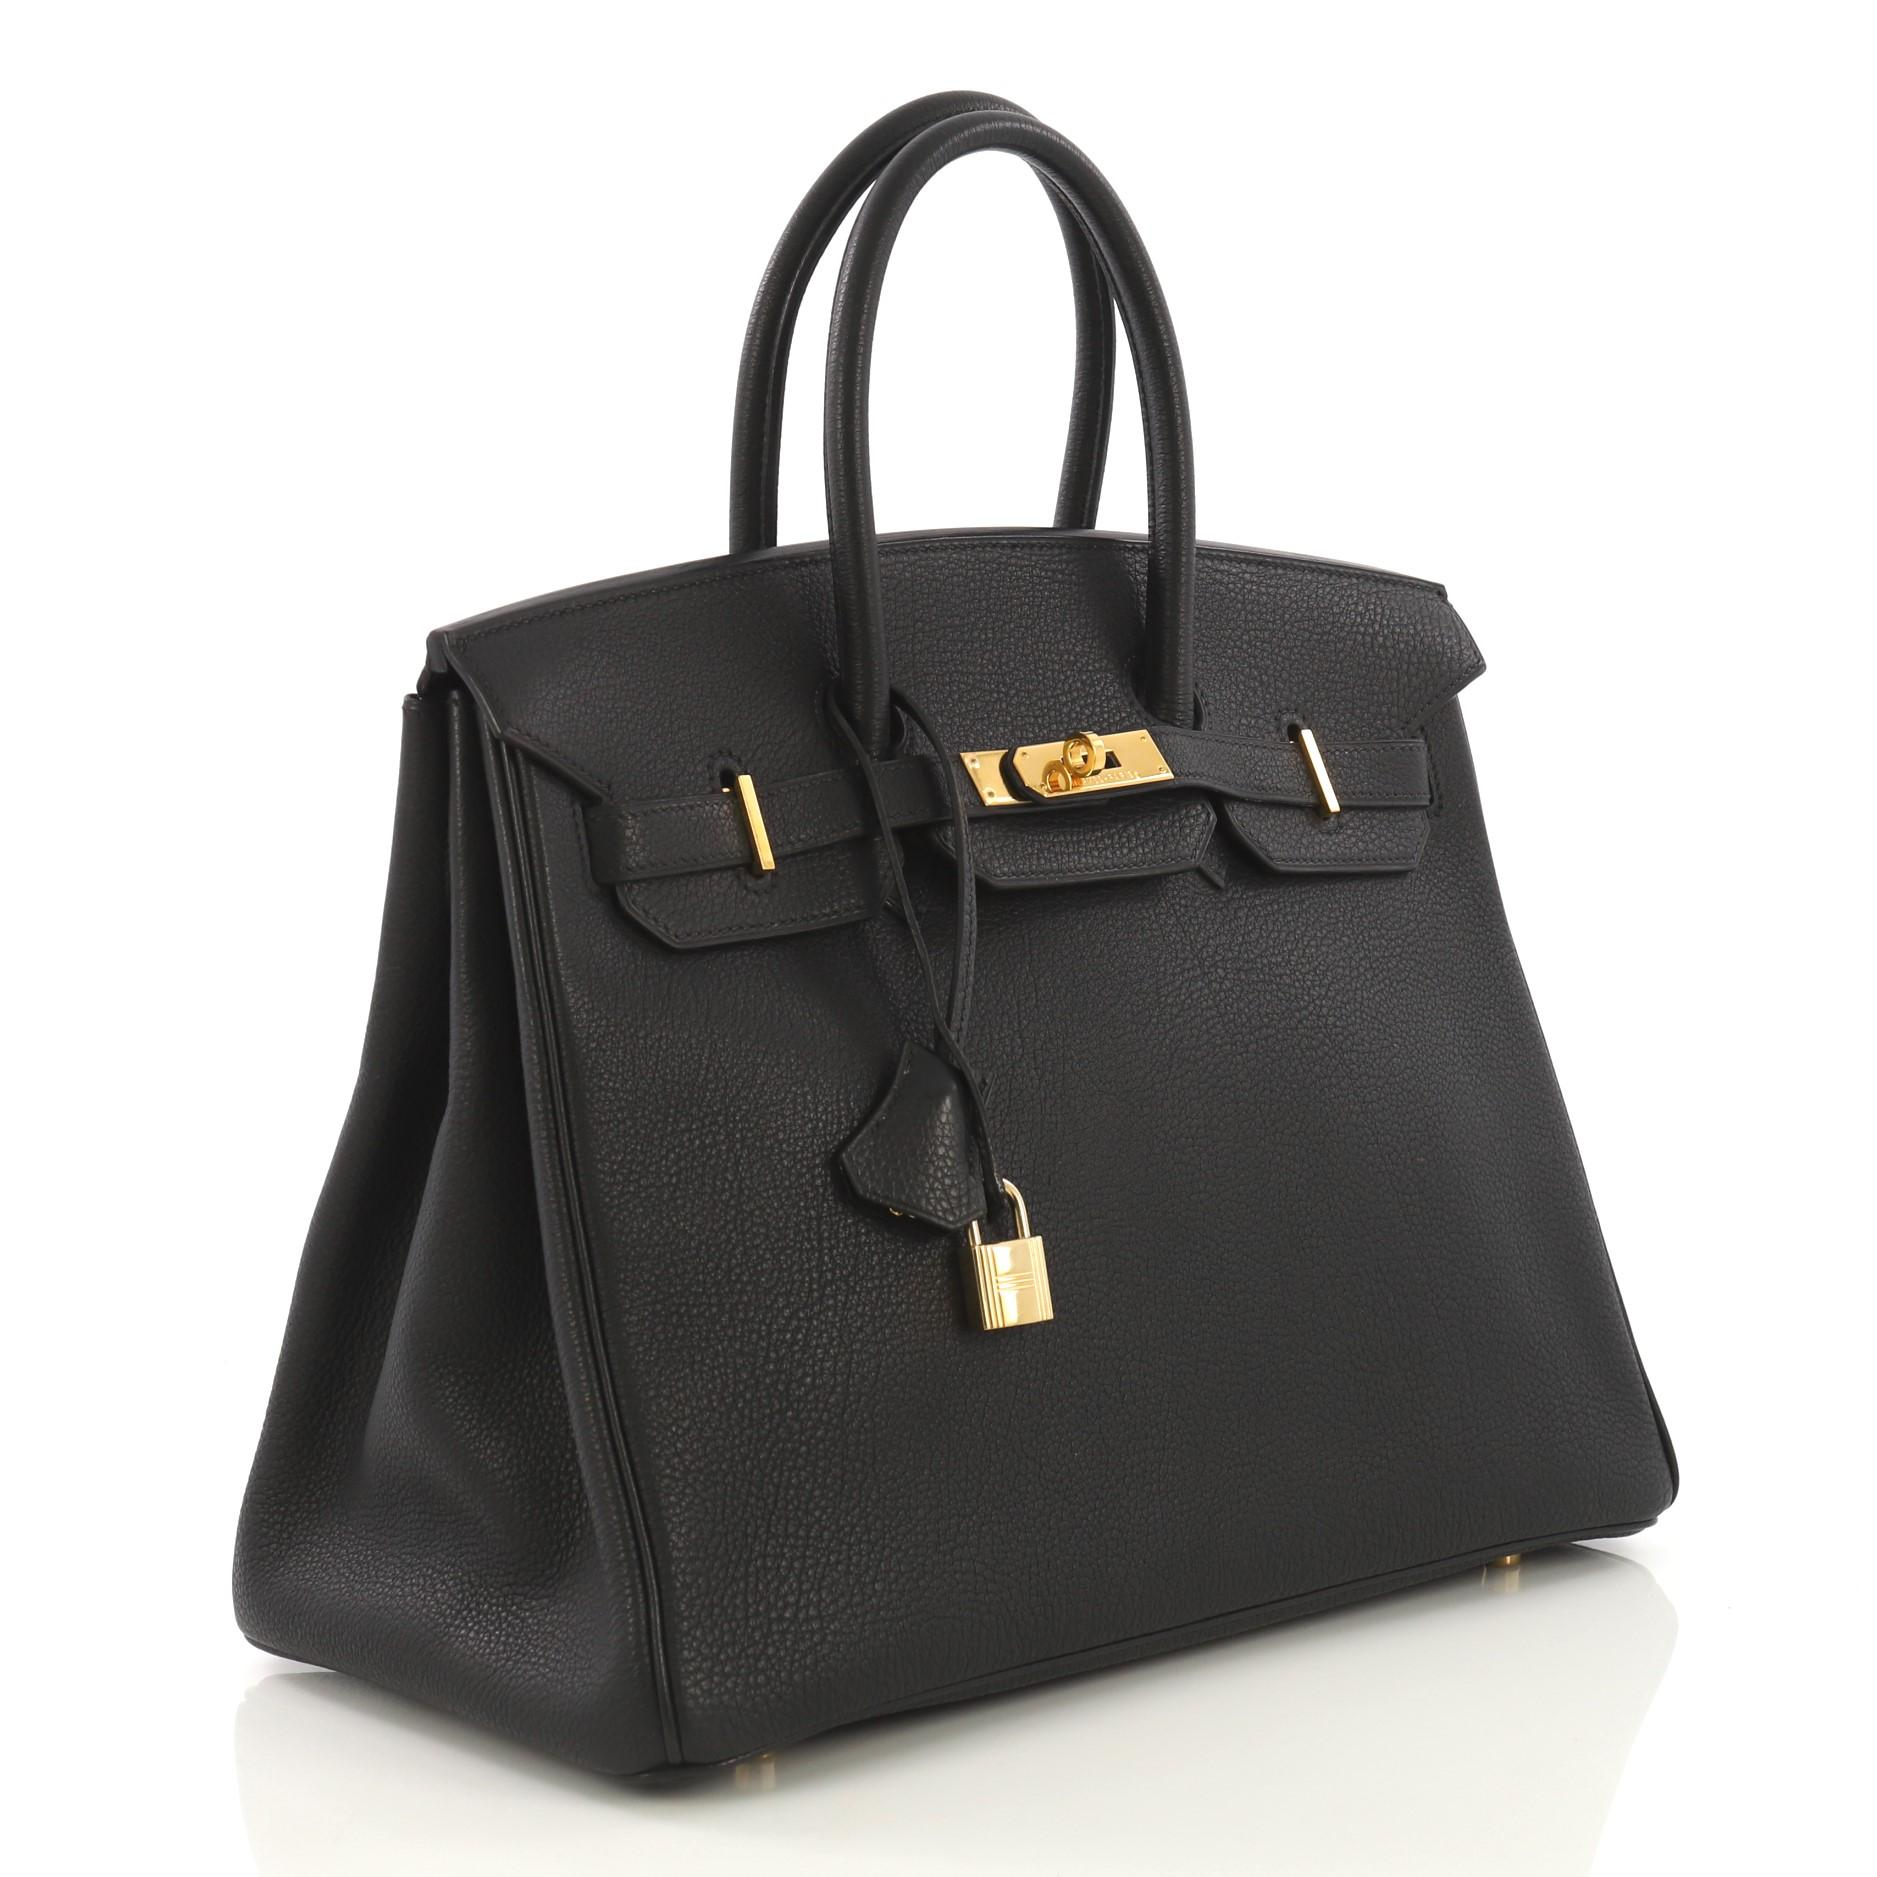 e632c074dc Vintage Hermès Tote Bags - 614 For Sale at 1stdibs - Page 2